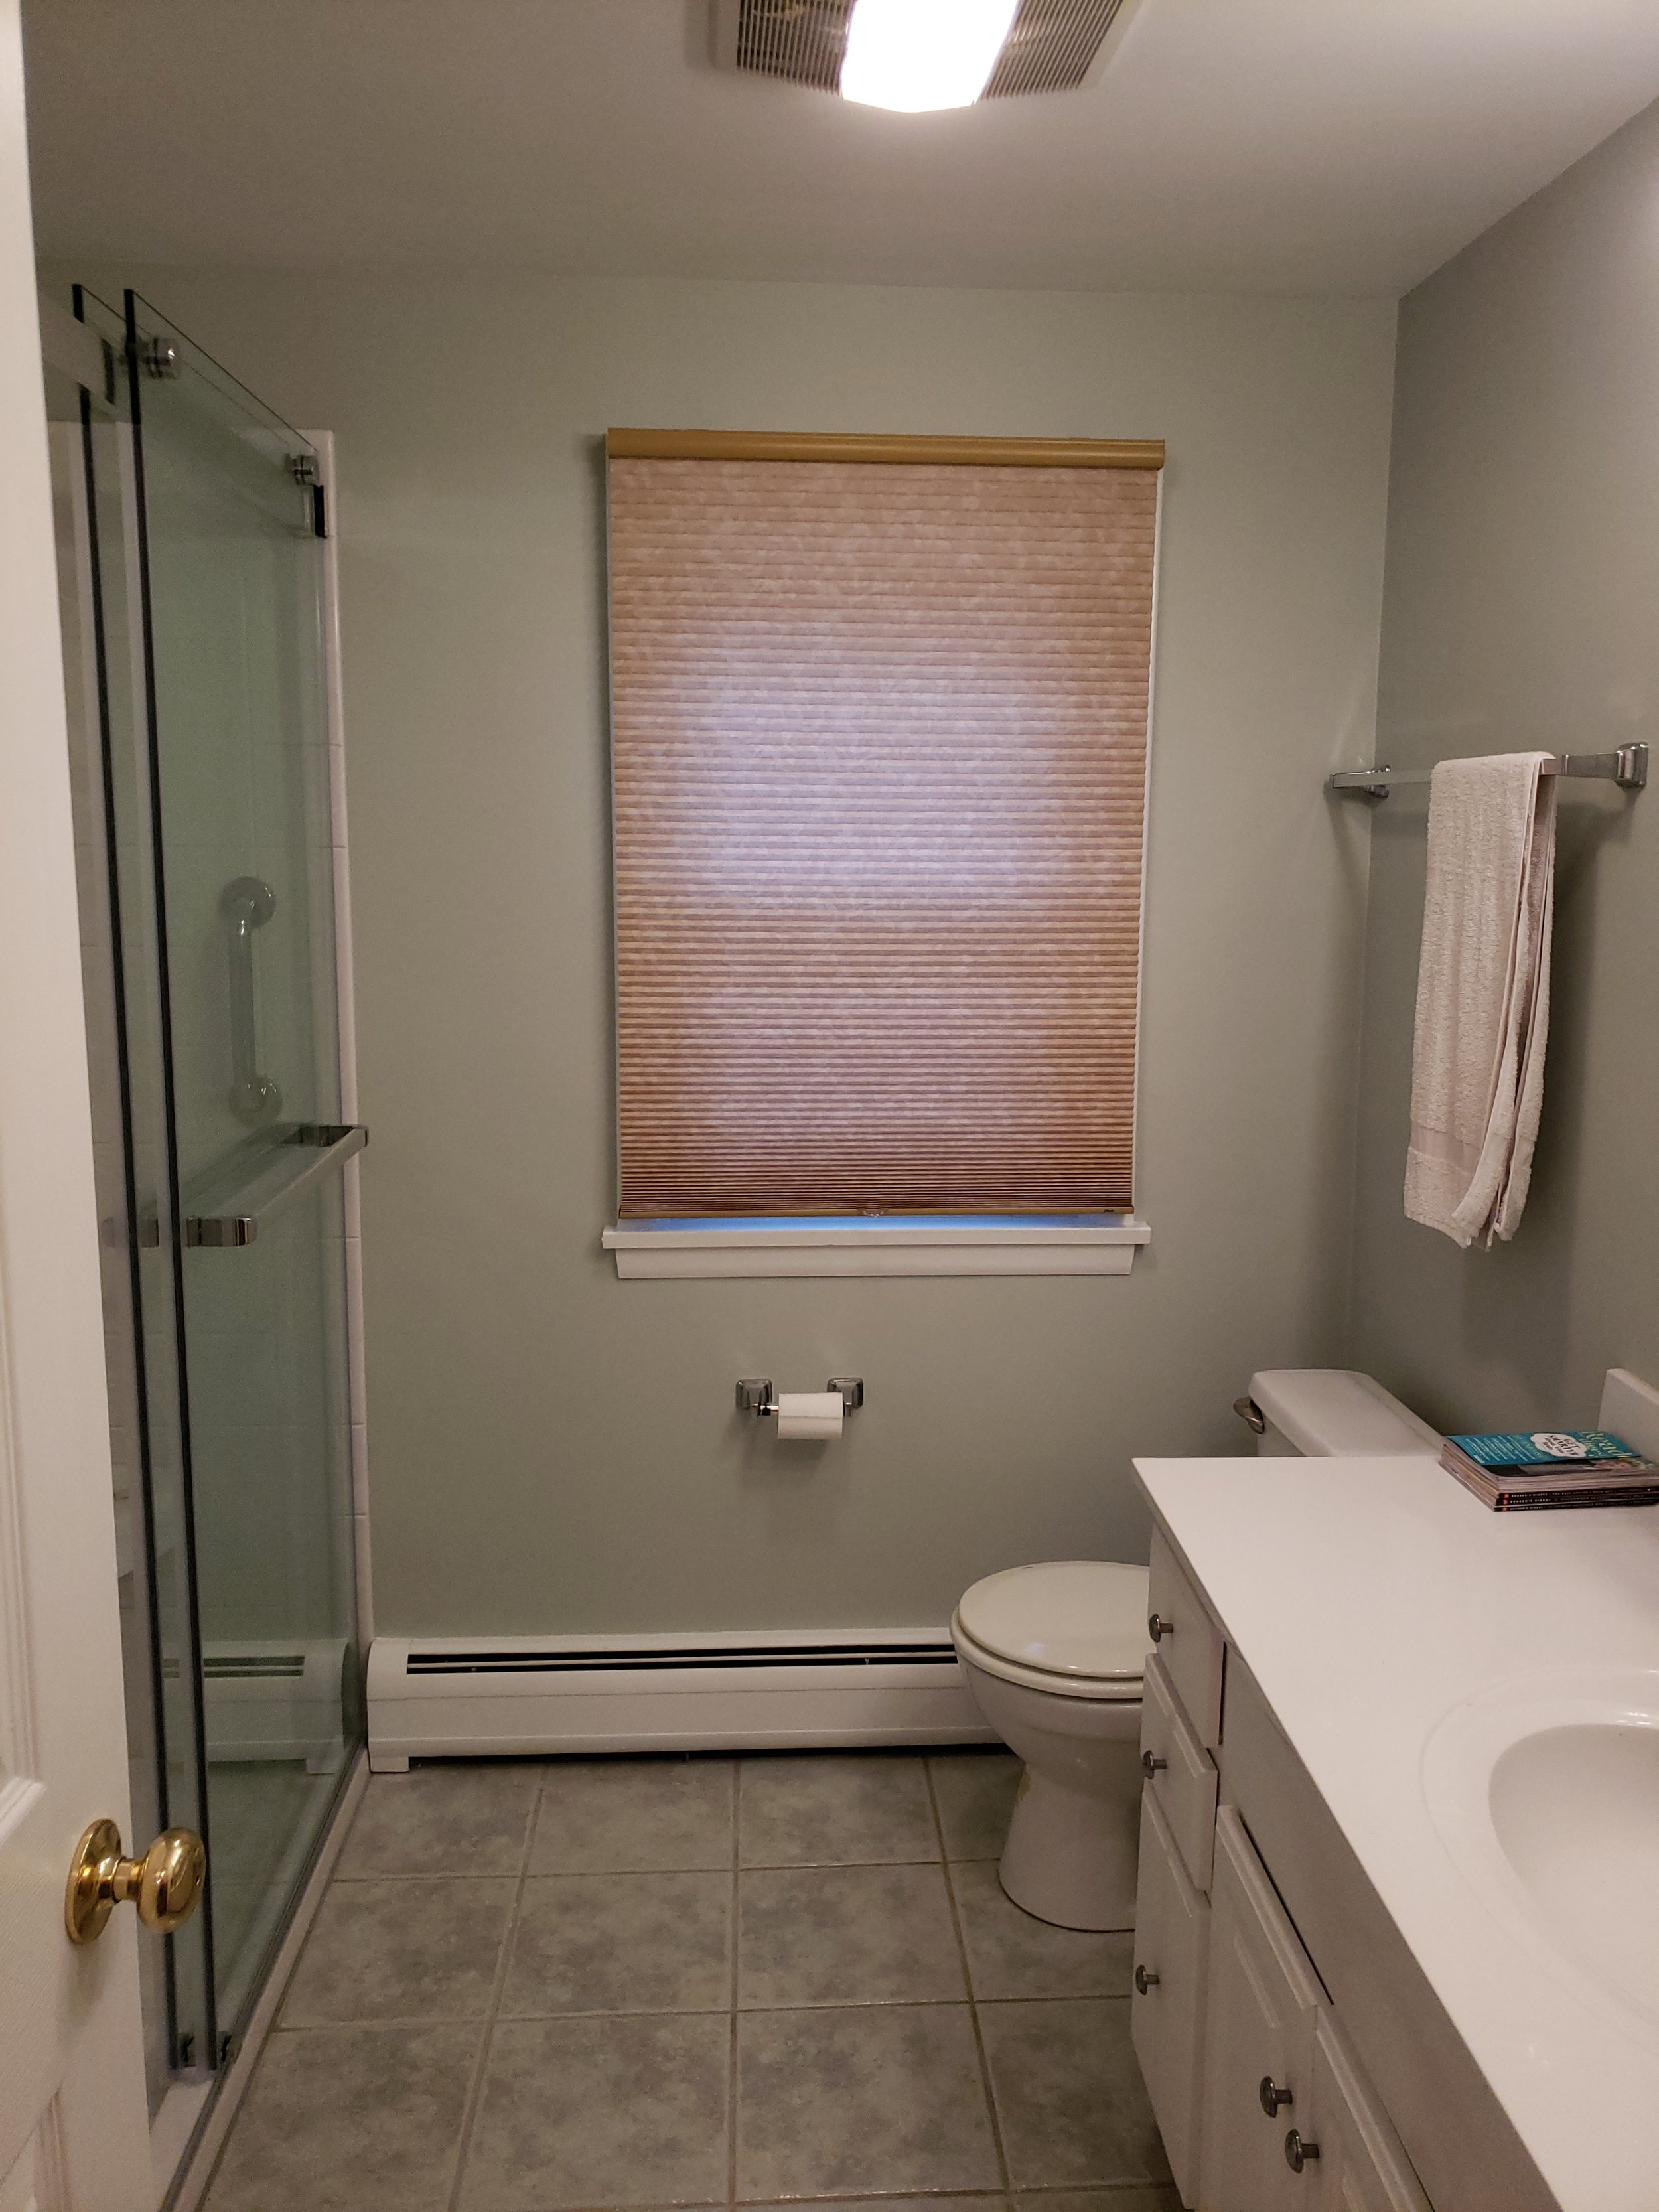 """"""" Josh painted almost all of our ceilings and six rooms. His work and  advice were impeccable. I  was  unsure about colors  and like those  that he recommended. He was easy to be around, and that was important  since he was working  in the house for about three weeks. The work was started and finished on time, too.""""    -Julie D."""